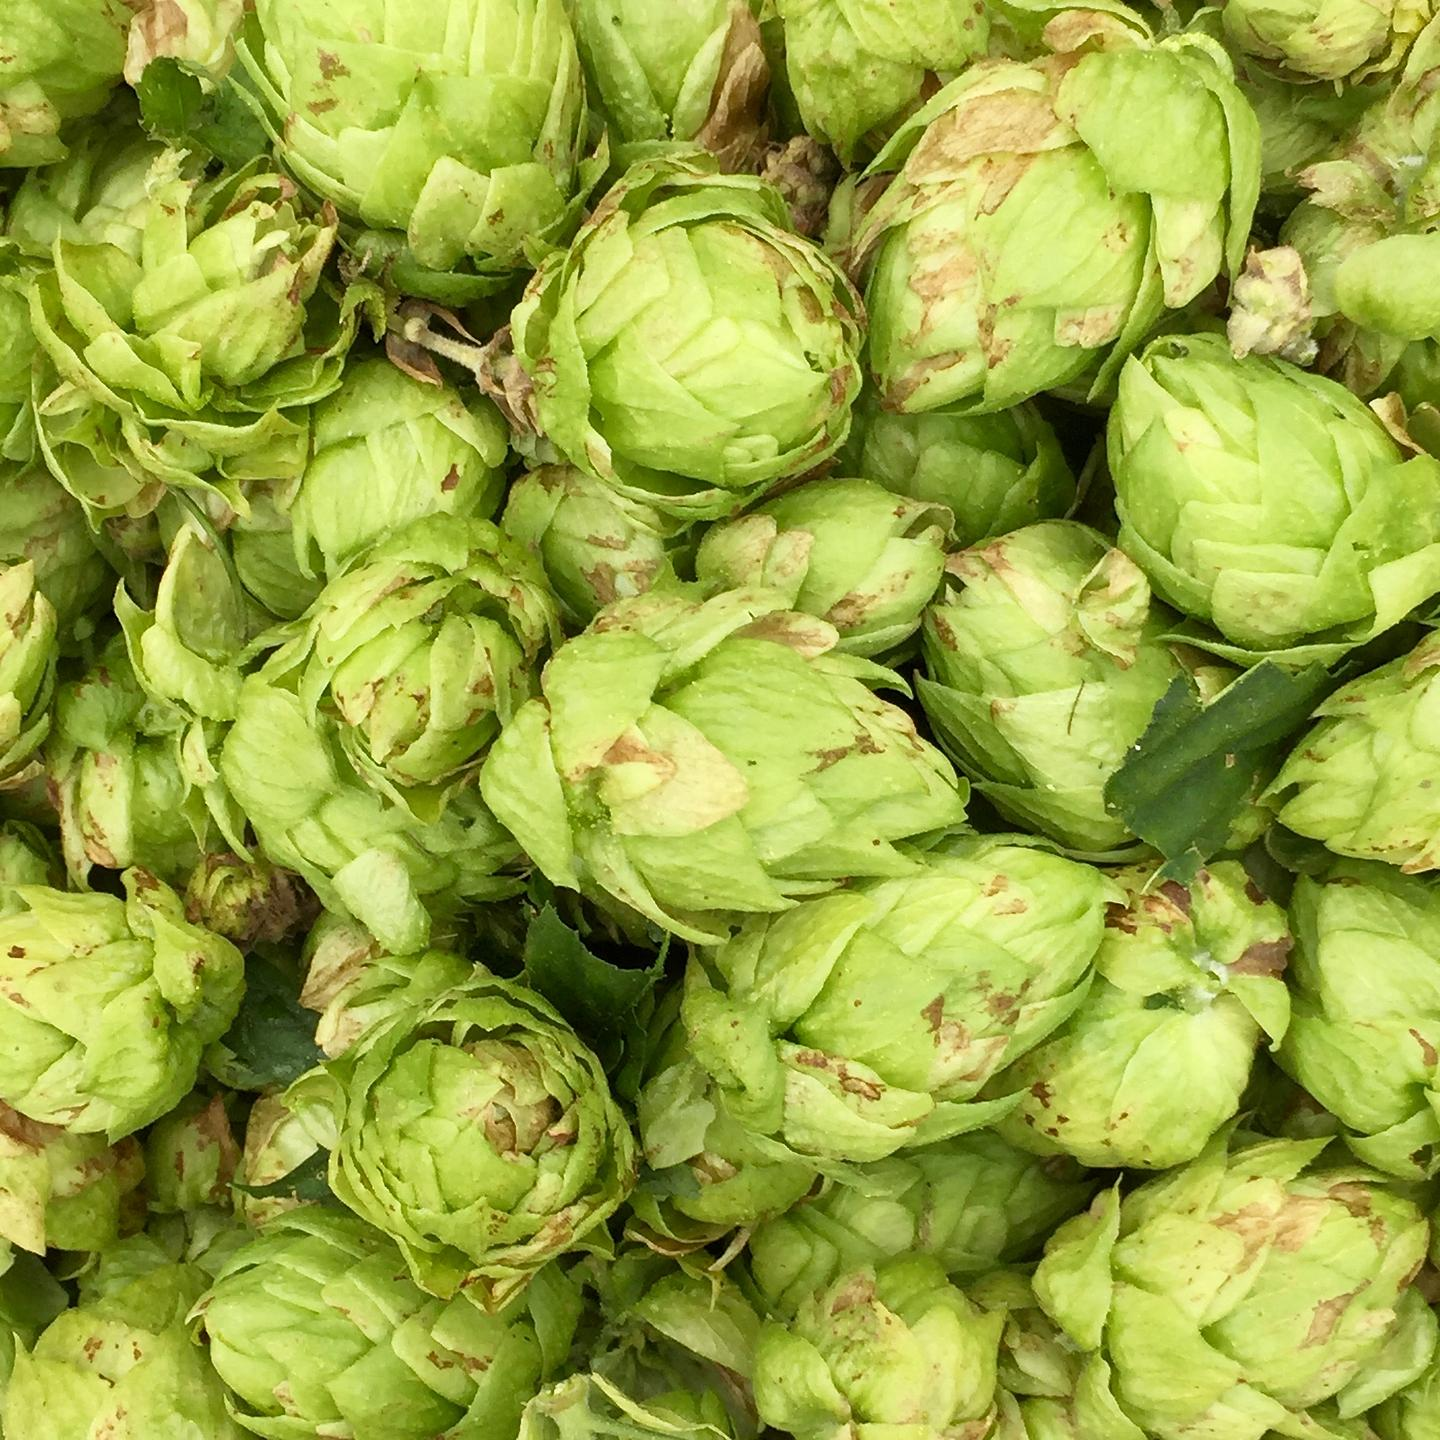 Millcreek Manor Hops Farm Harvest